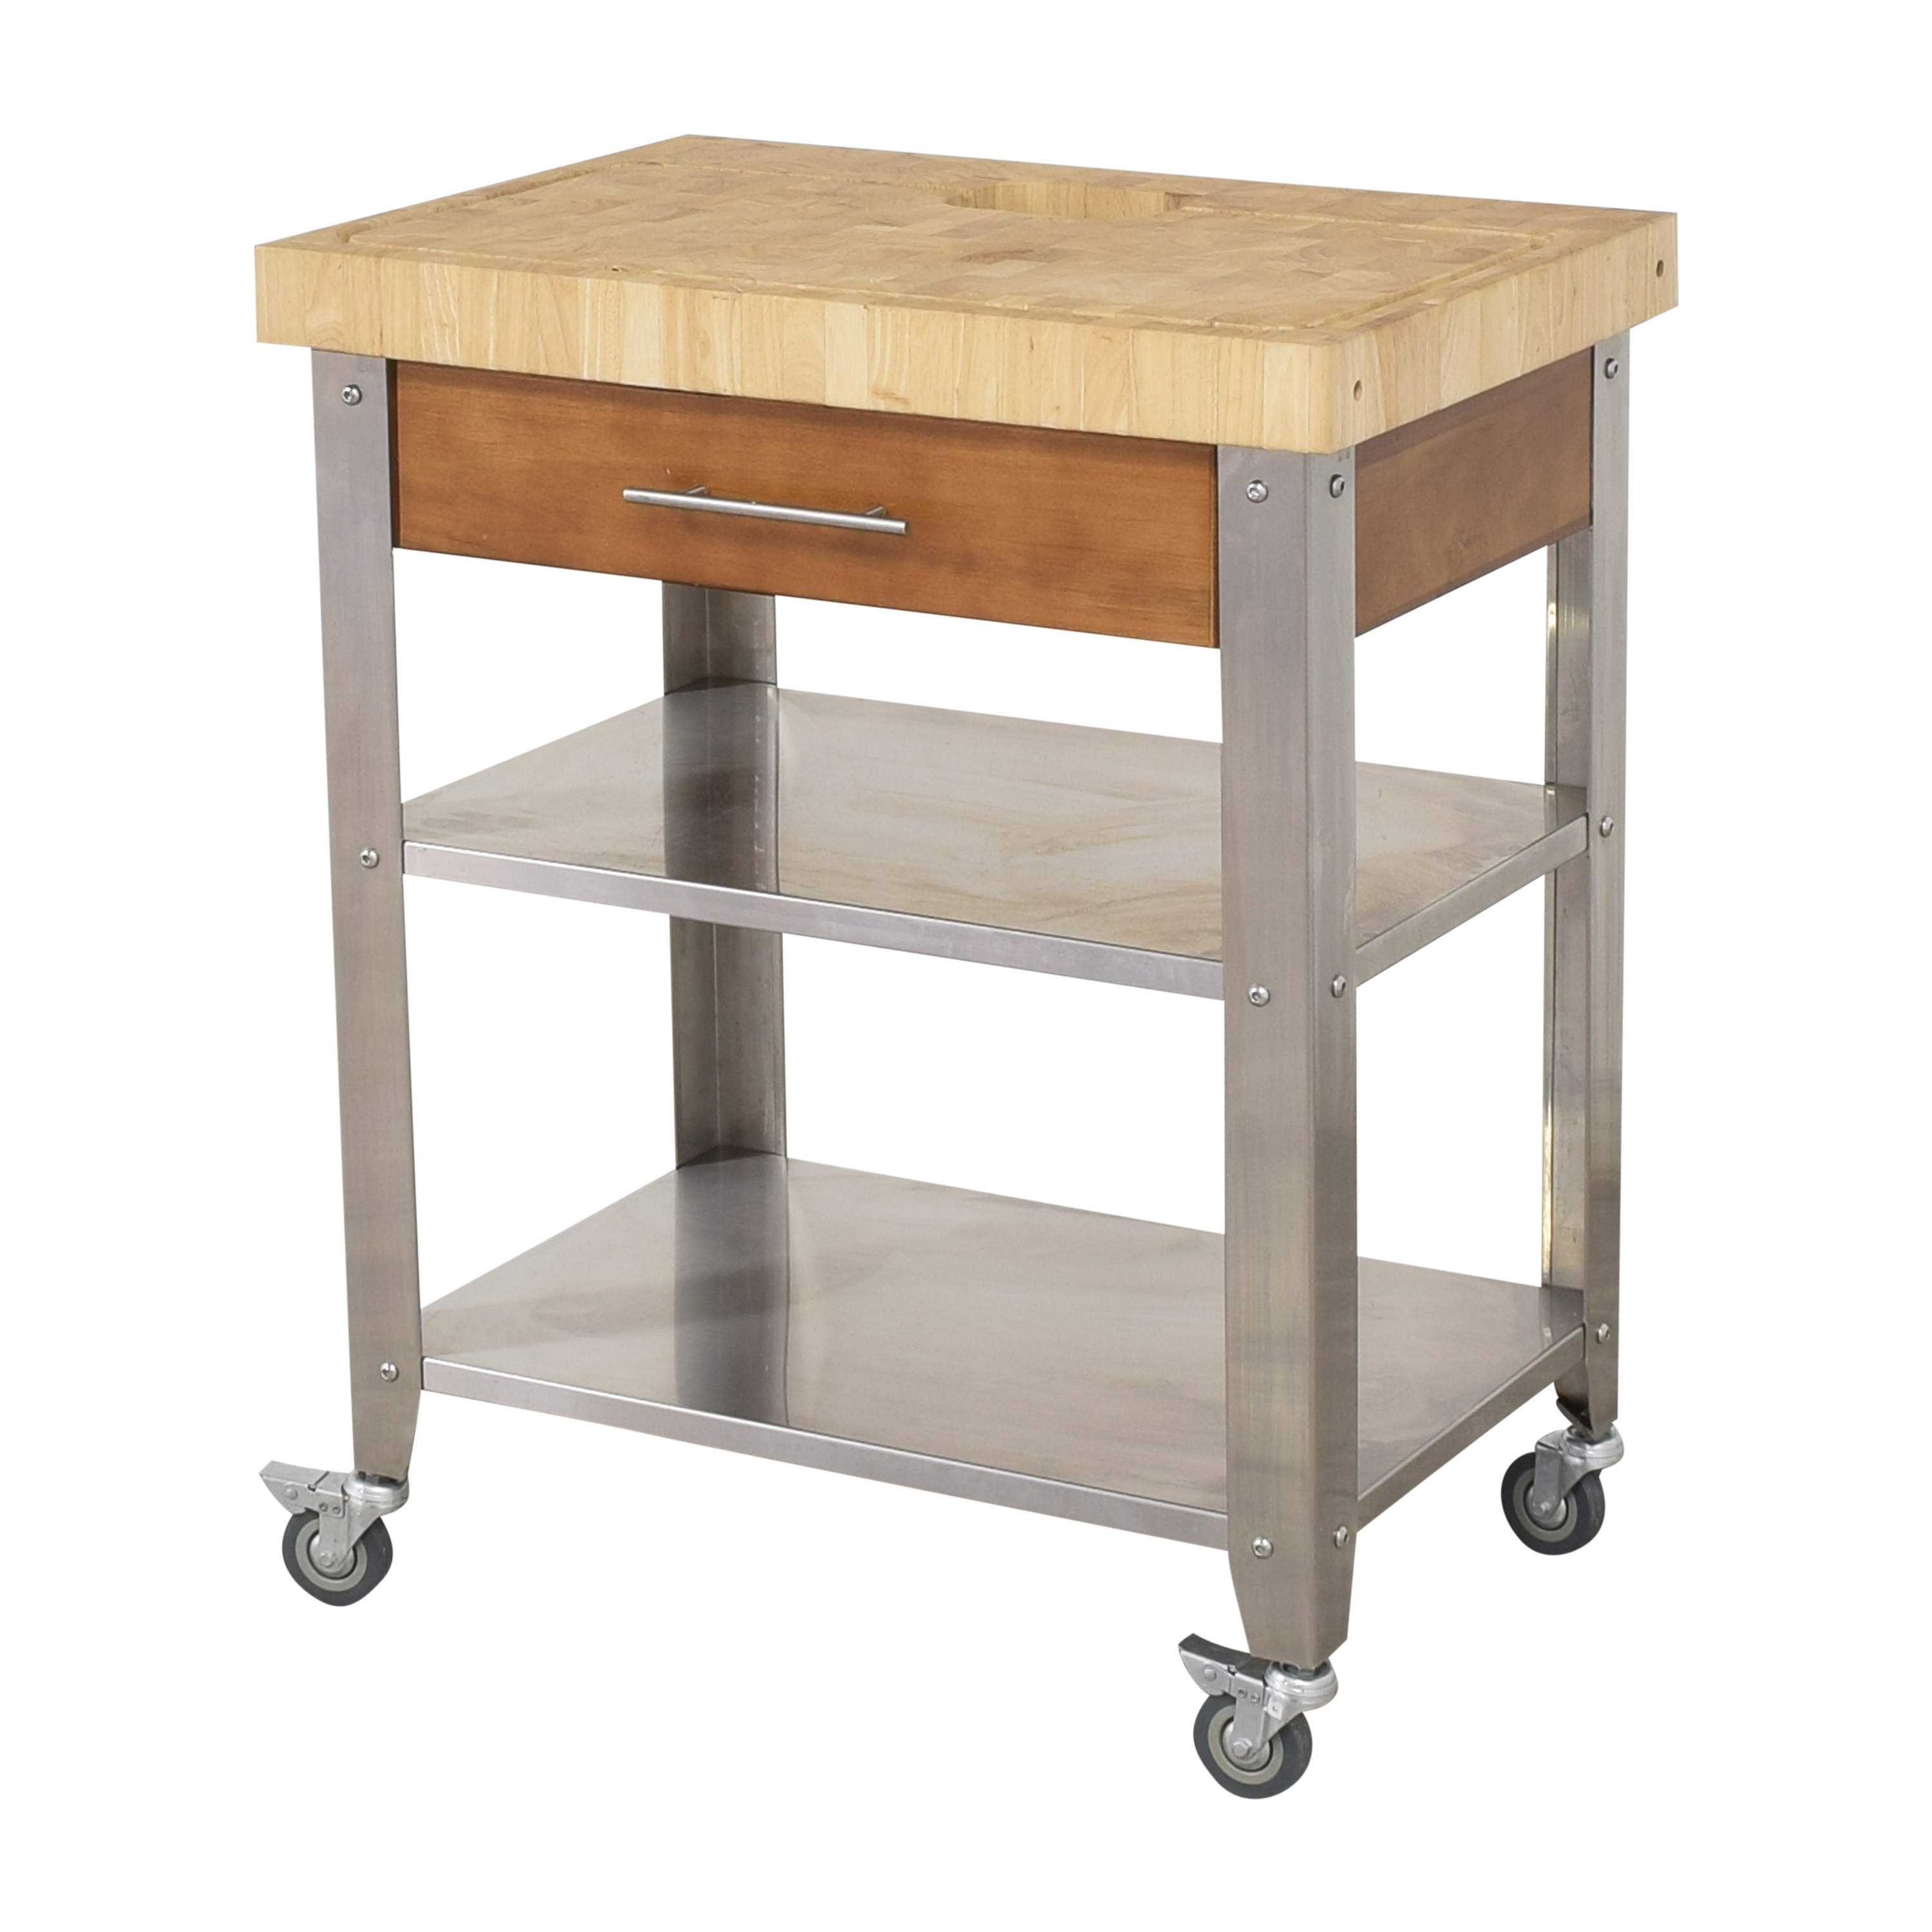 Chris & Chris Chris & Chris Pro Stadium Series Kitchen Cart used